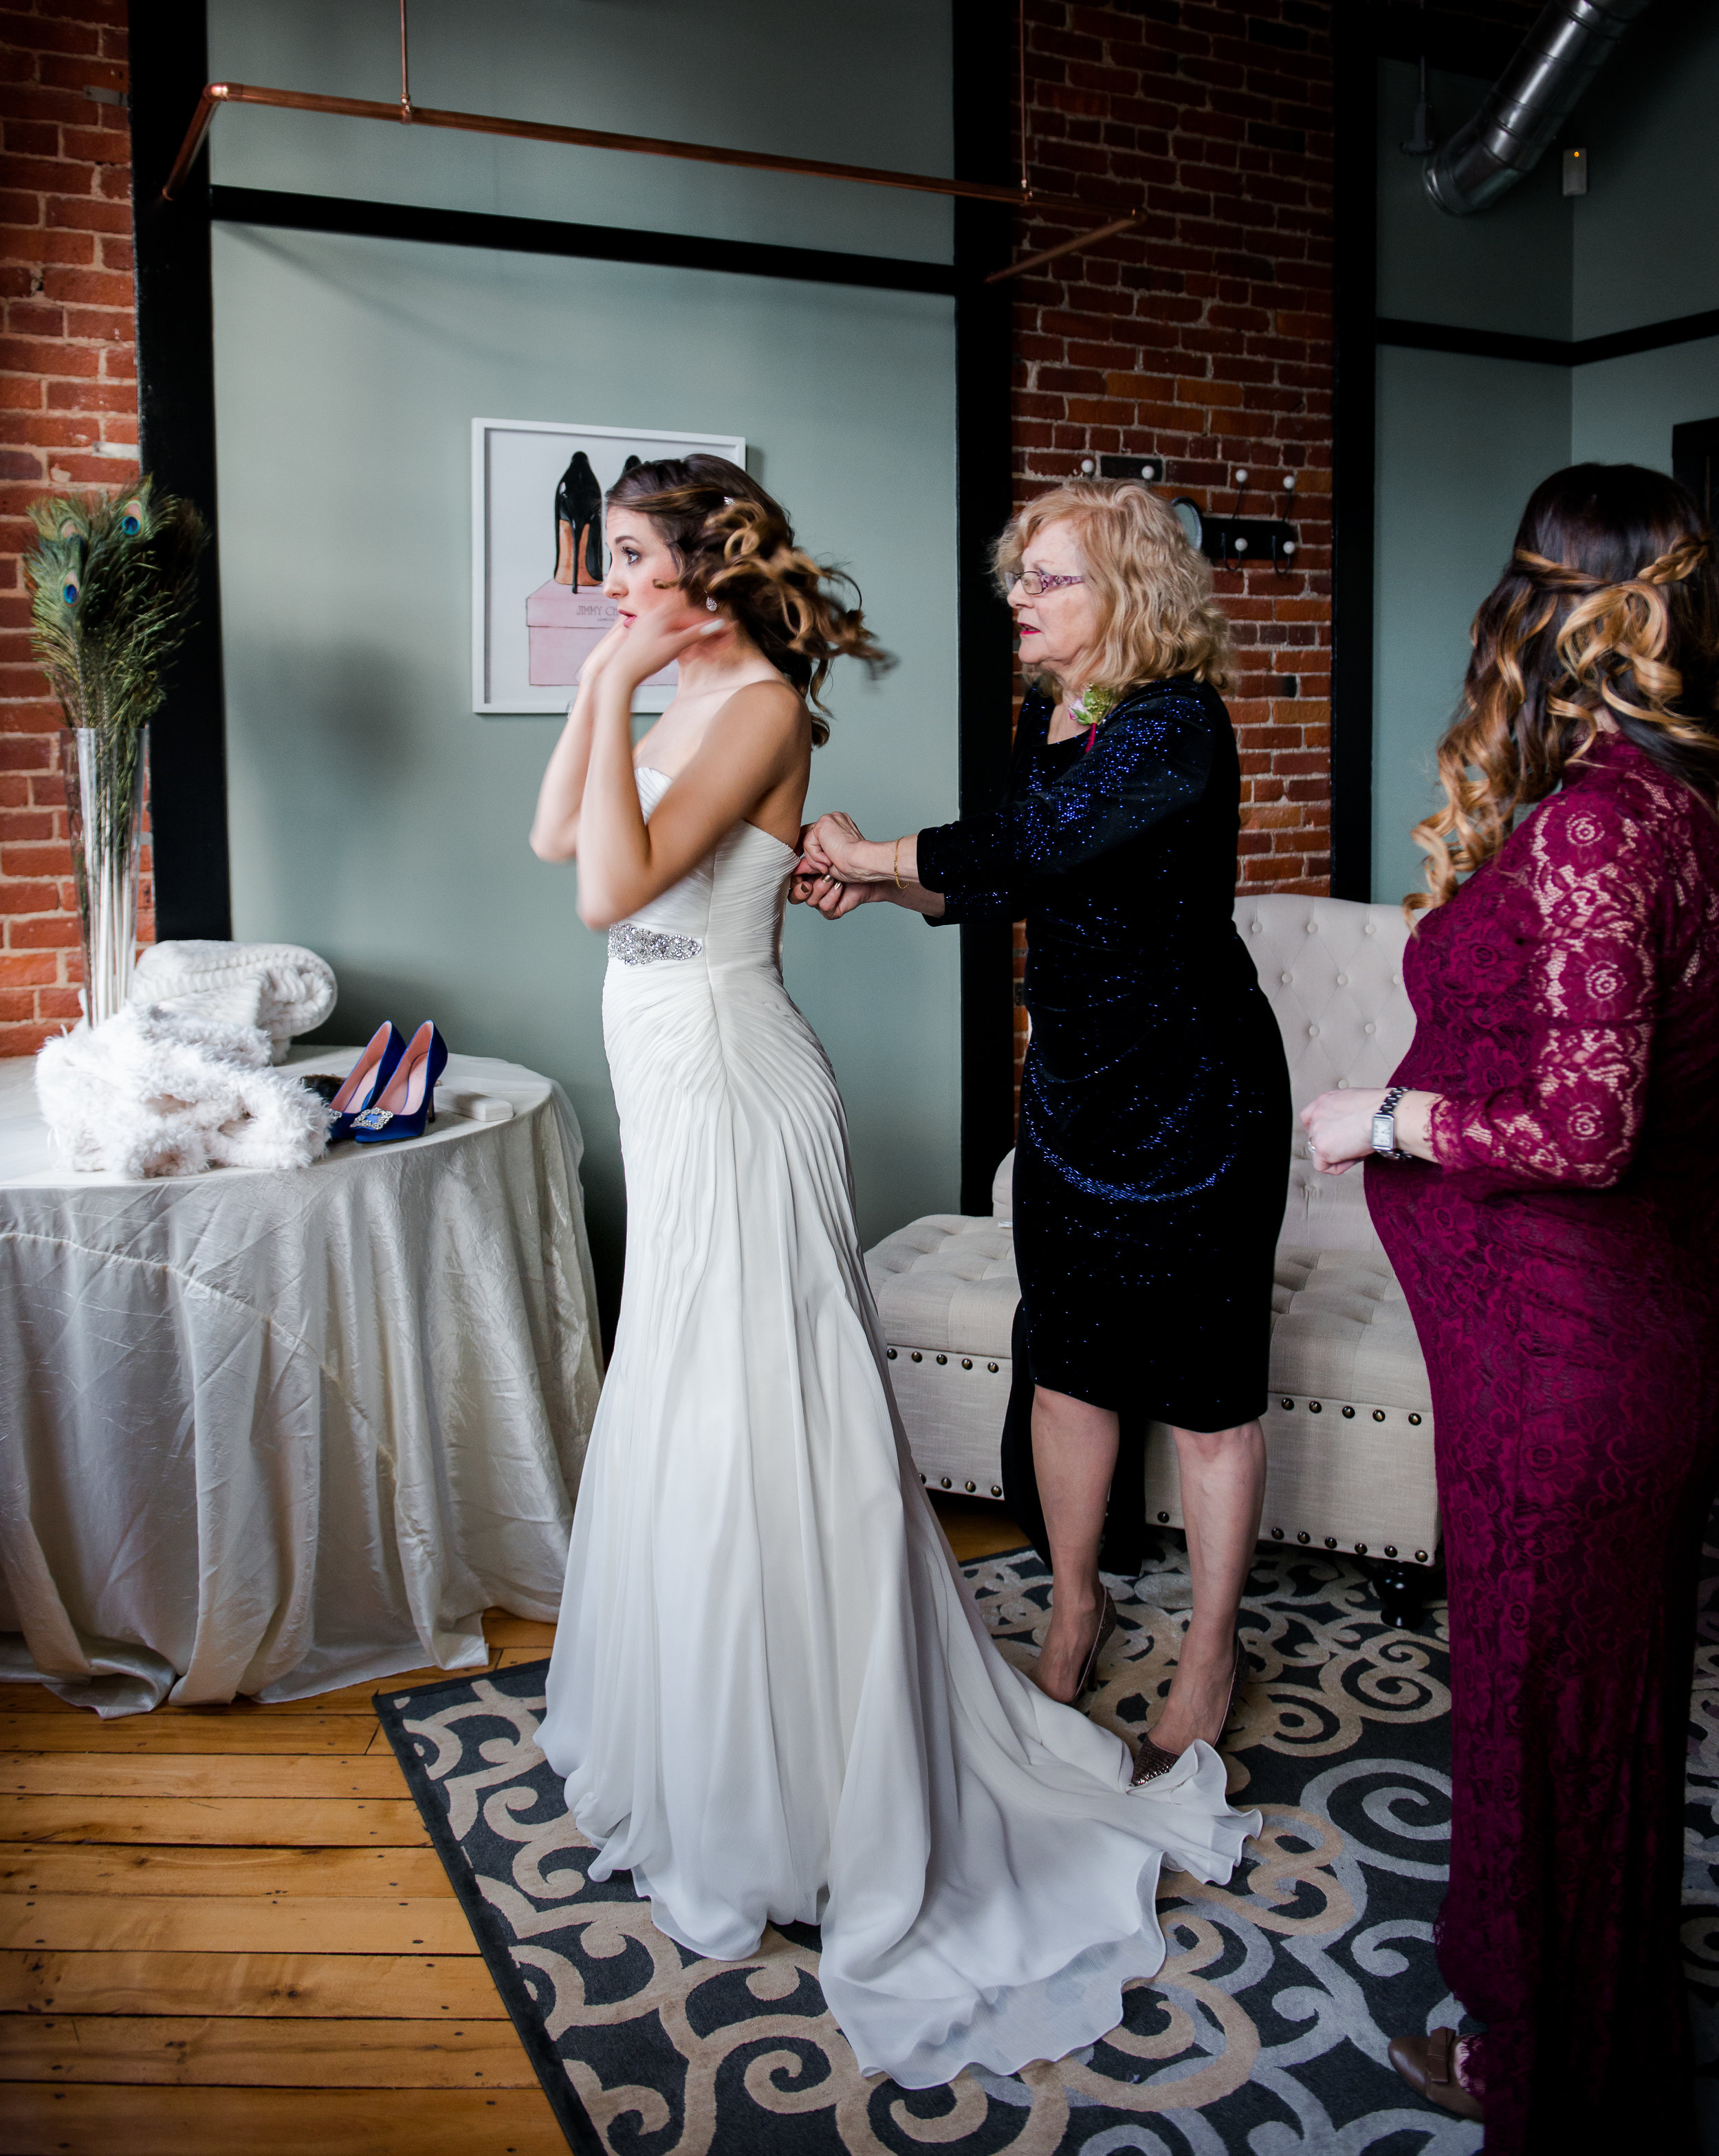 LUV LENS_WEDDING_EMILY AND ANDREW-133.jpg